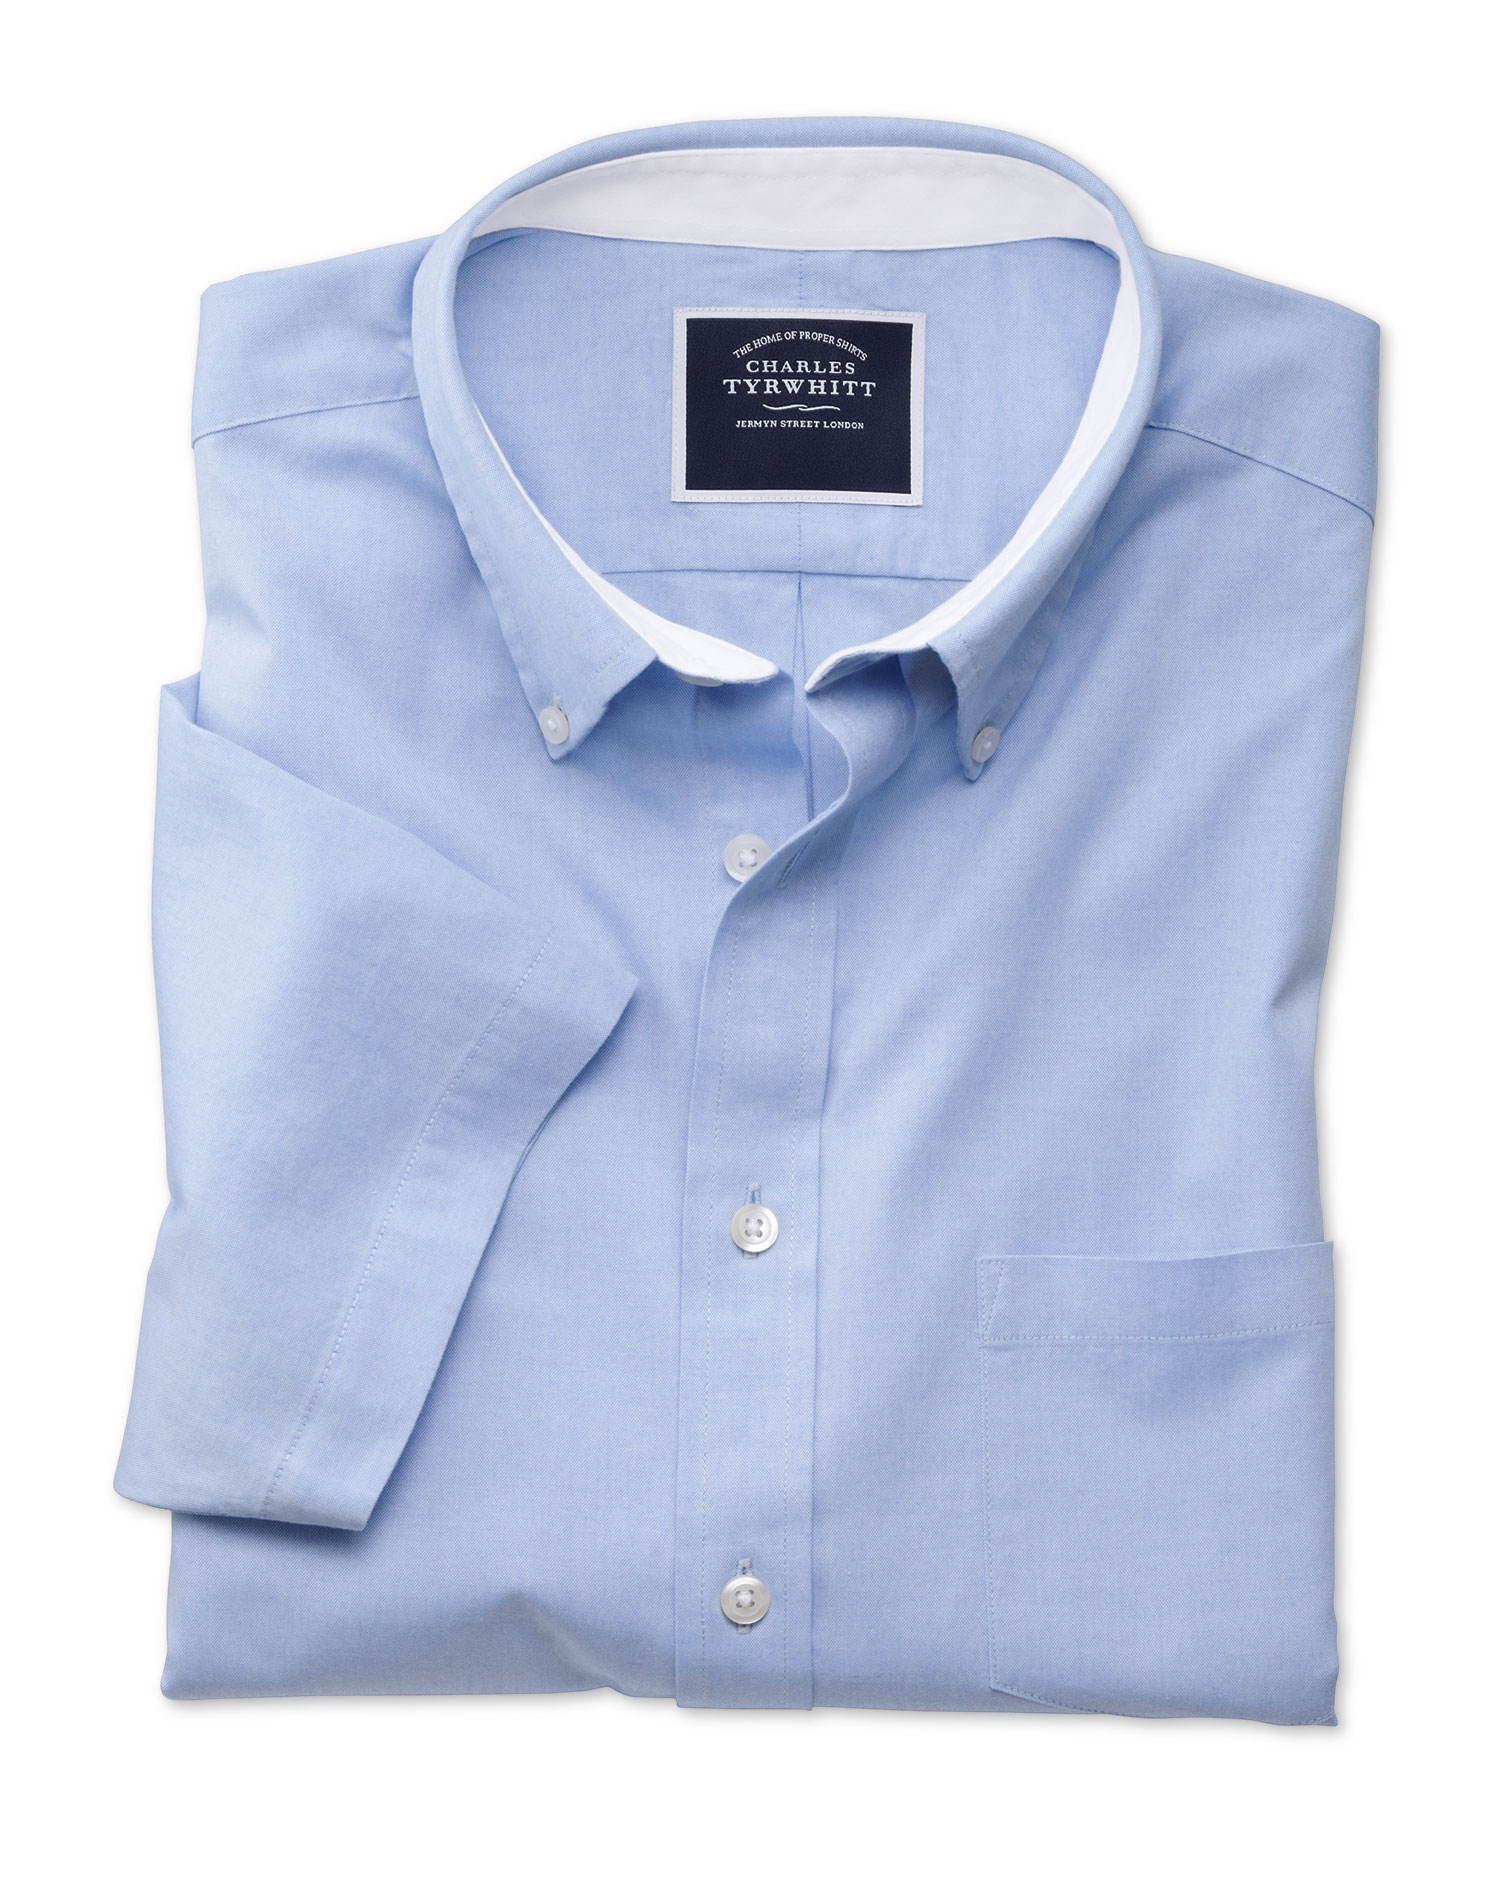 Classic Fit Button-Down Washed Oxford Short Sleeve Sky Blue Cotton Shirt Single Cuff Size XXL by Cha